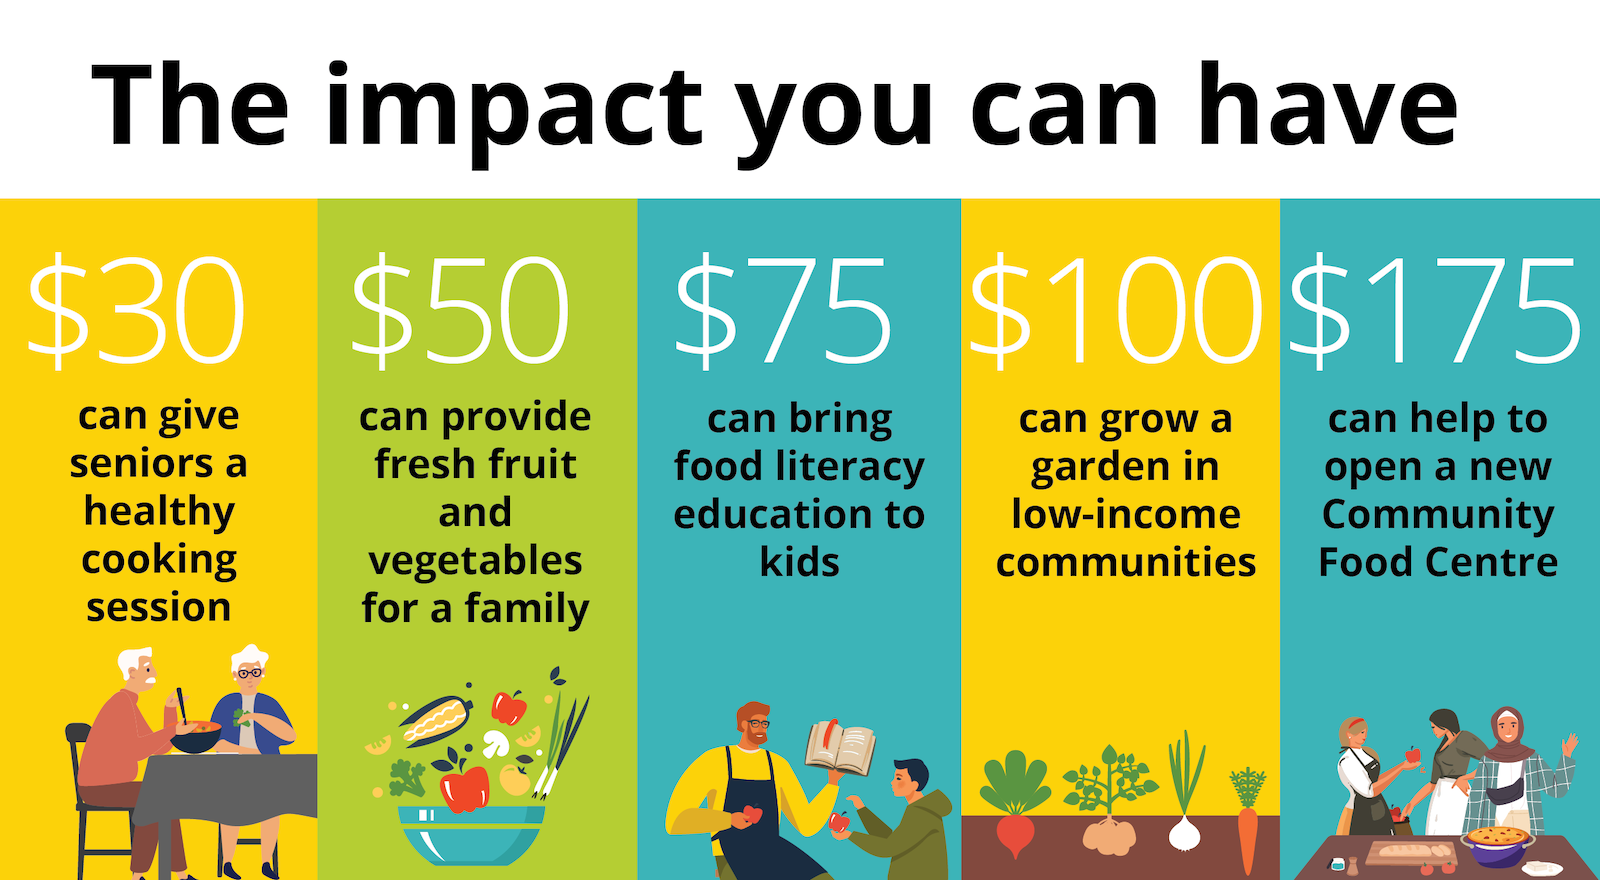 graphic with headline the impact you can have broken down by dollar amount: $30 can give seniors a healthy cooking session 